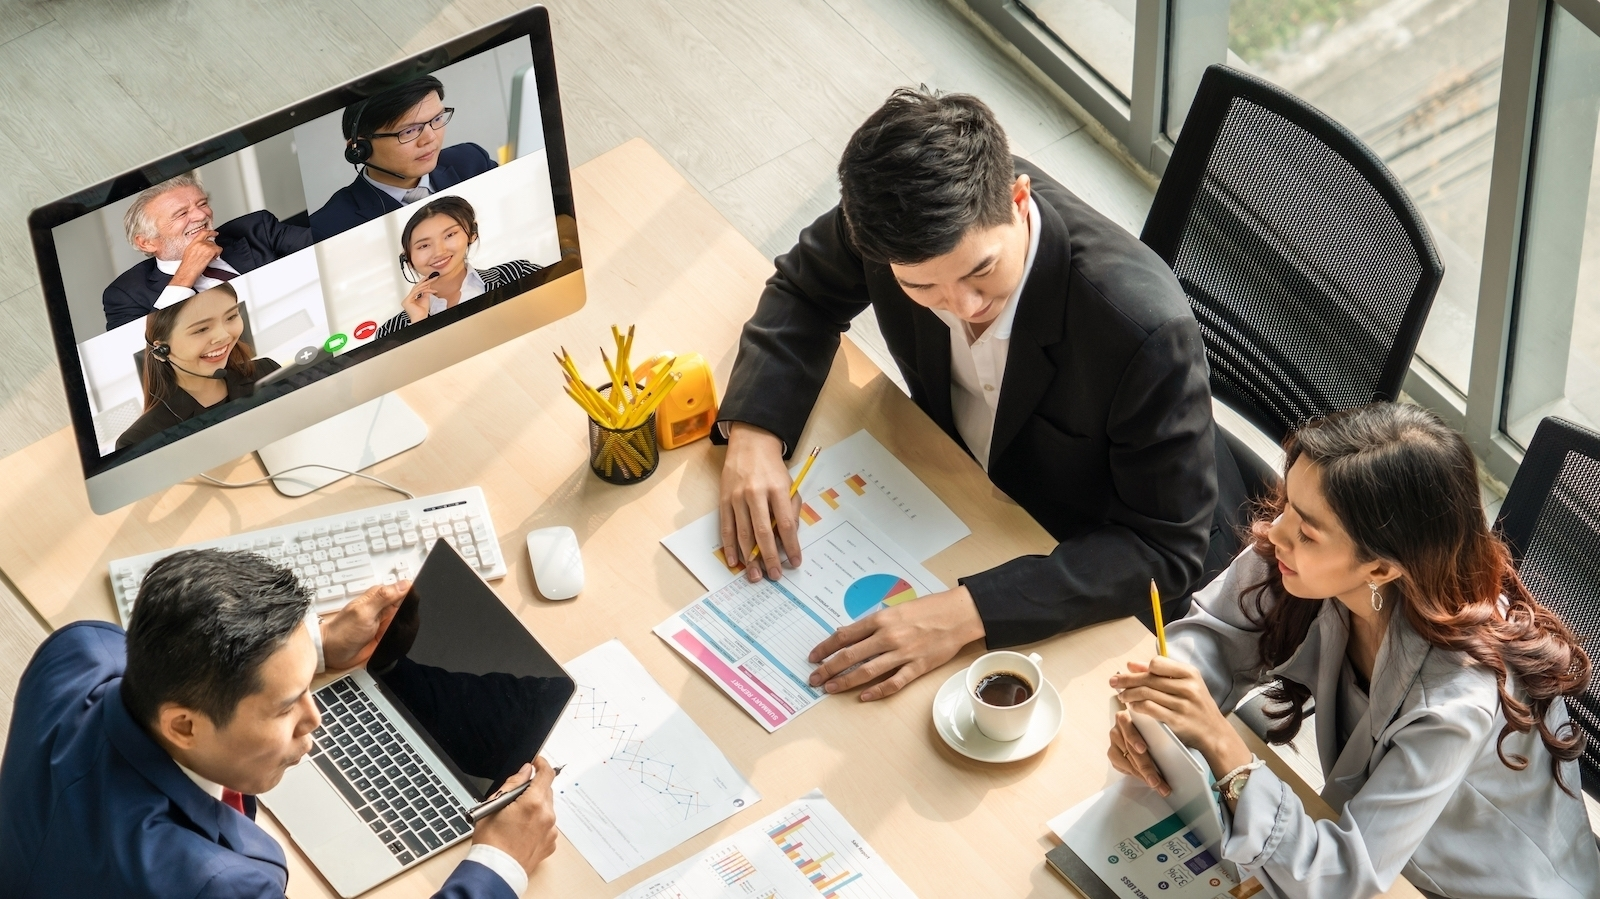 team in office meeting with coworkers on video call